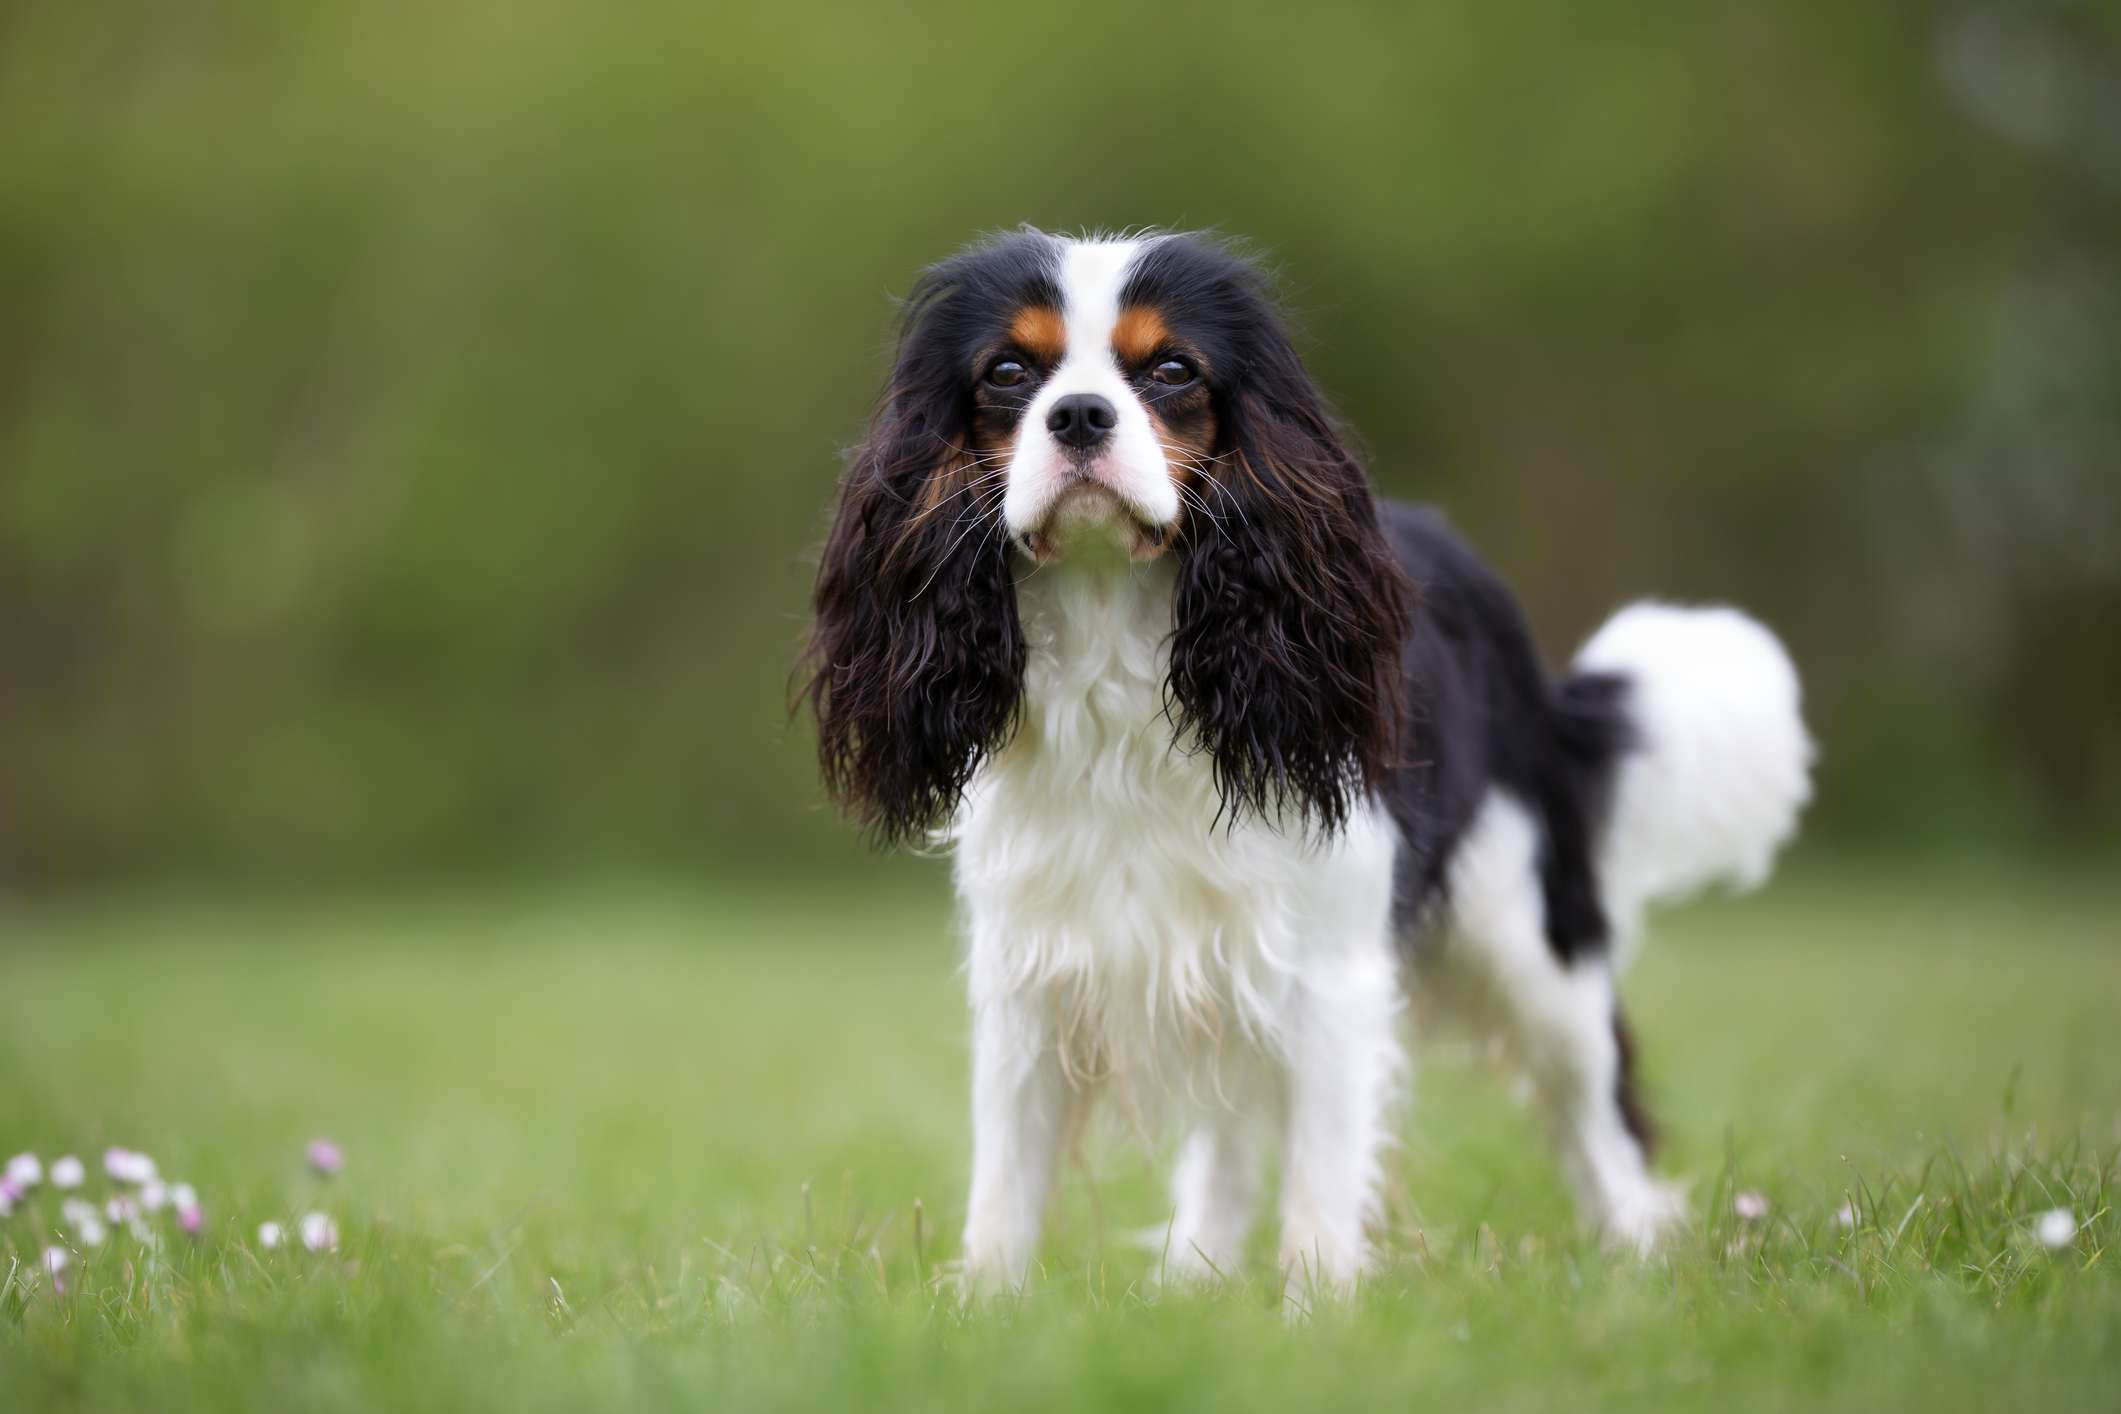 Tricolor Cavalier King Charles spaniel standing on grass